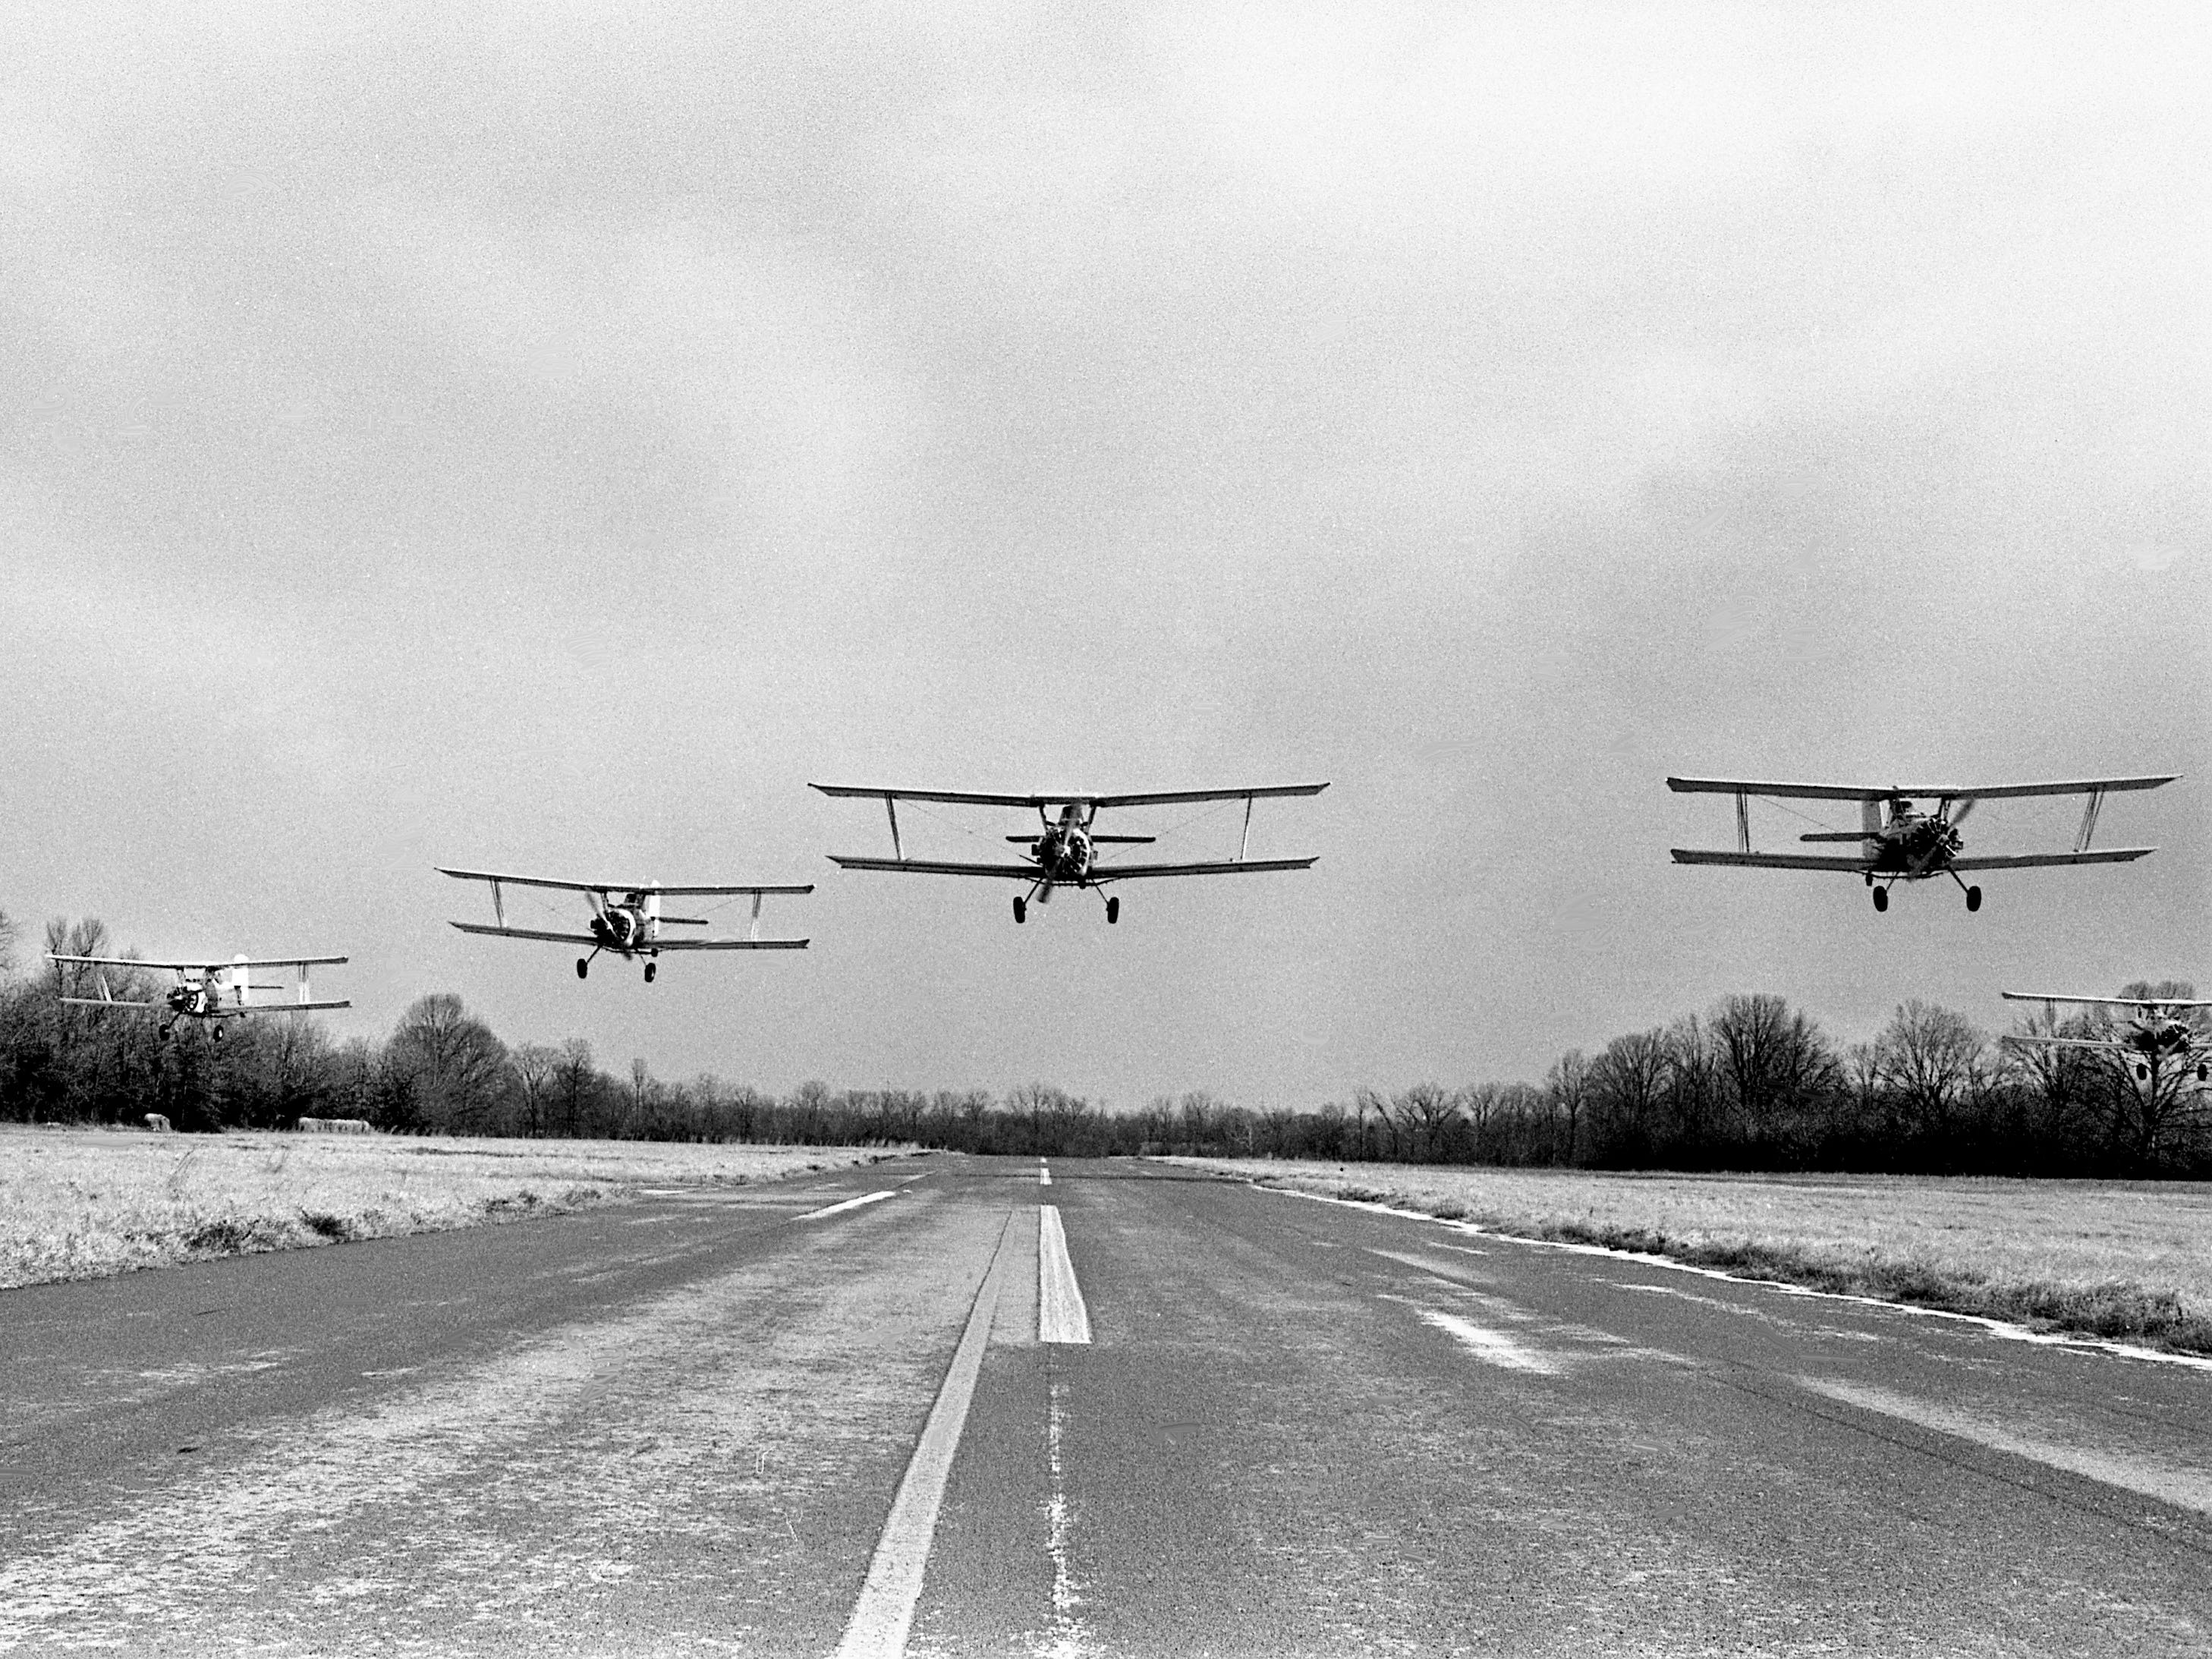 A pre-dawn raid to seek out the Red Baron? Not quite, these similar to vintage World War I aircrafts are really new Grumman Ag-Cats being ferried from the factory in New York to Missouri. The mainly crop-dusting planes are leaving Cornelia Fort Airpark on Jan. 31, 1979, for the final leg of their trip after spending the night.